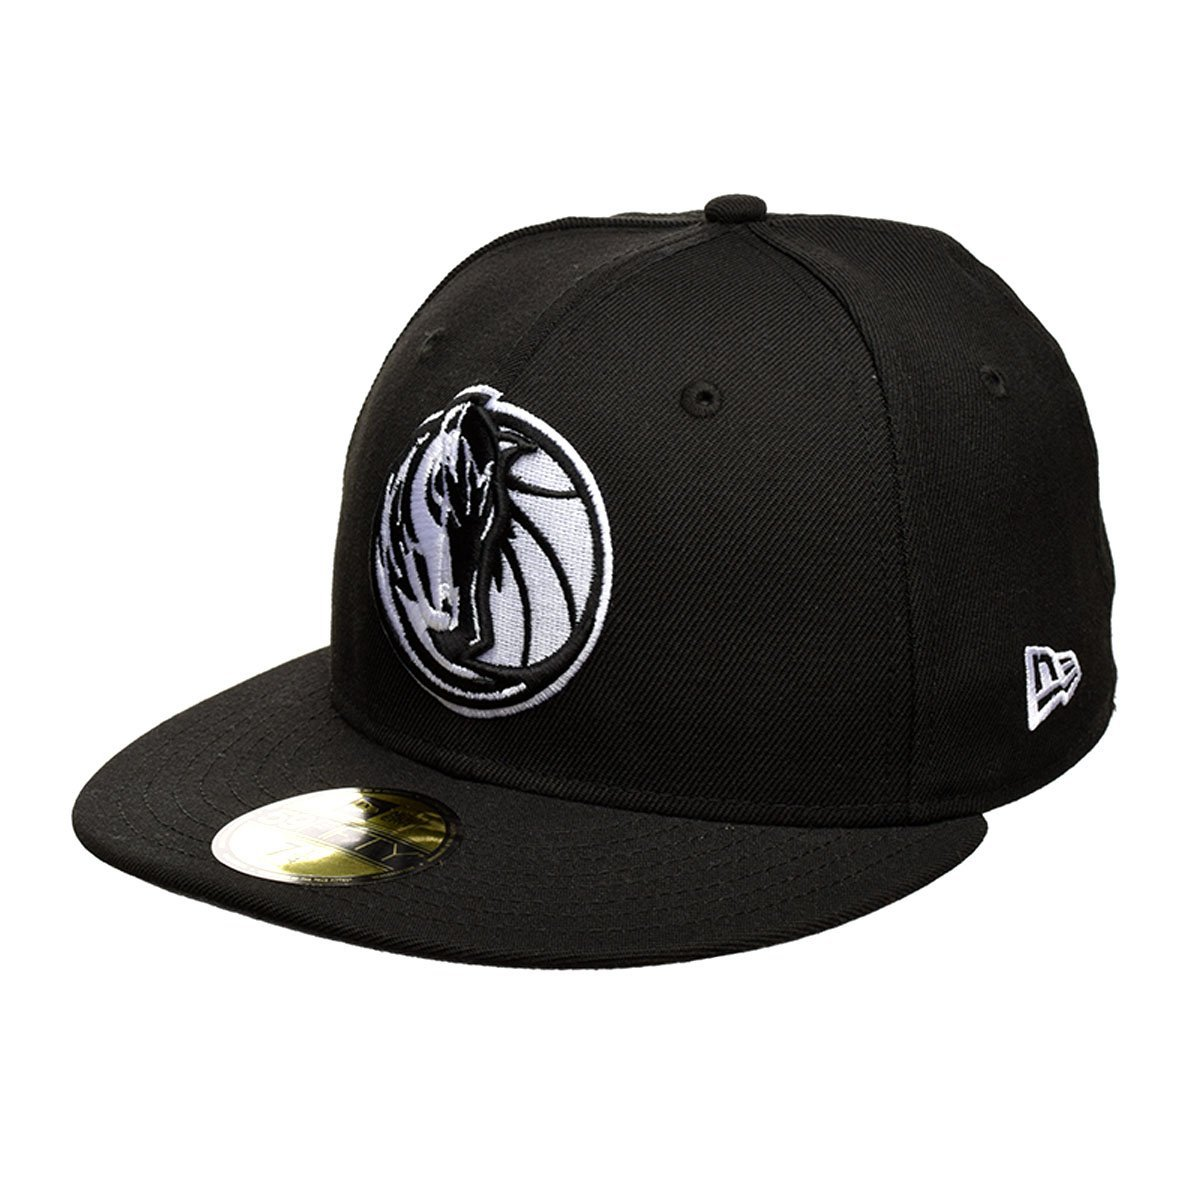 8e70a78046c Get Quotations · New Era Dallas Mavericks White On Black 59Fifty Fitted Hat  (Black)